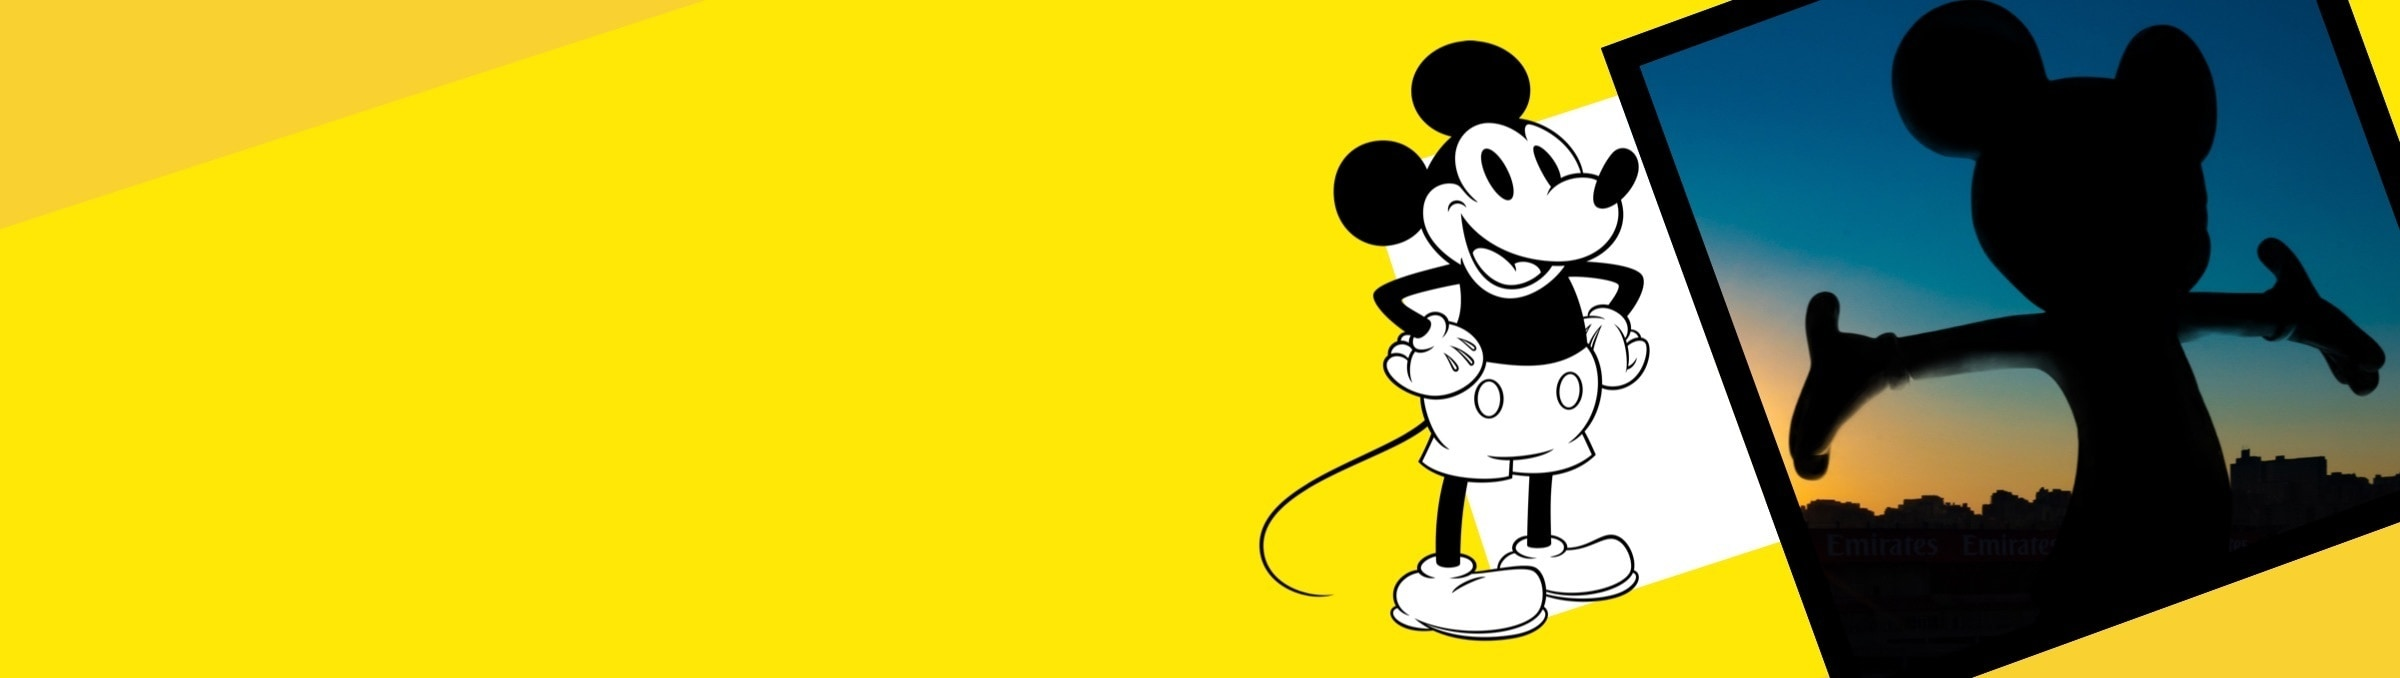 Mickey Mouse M90 art collaboration